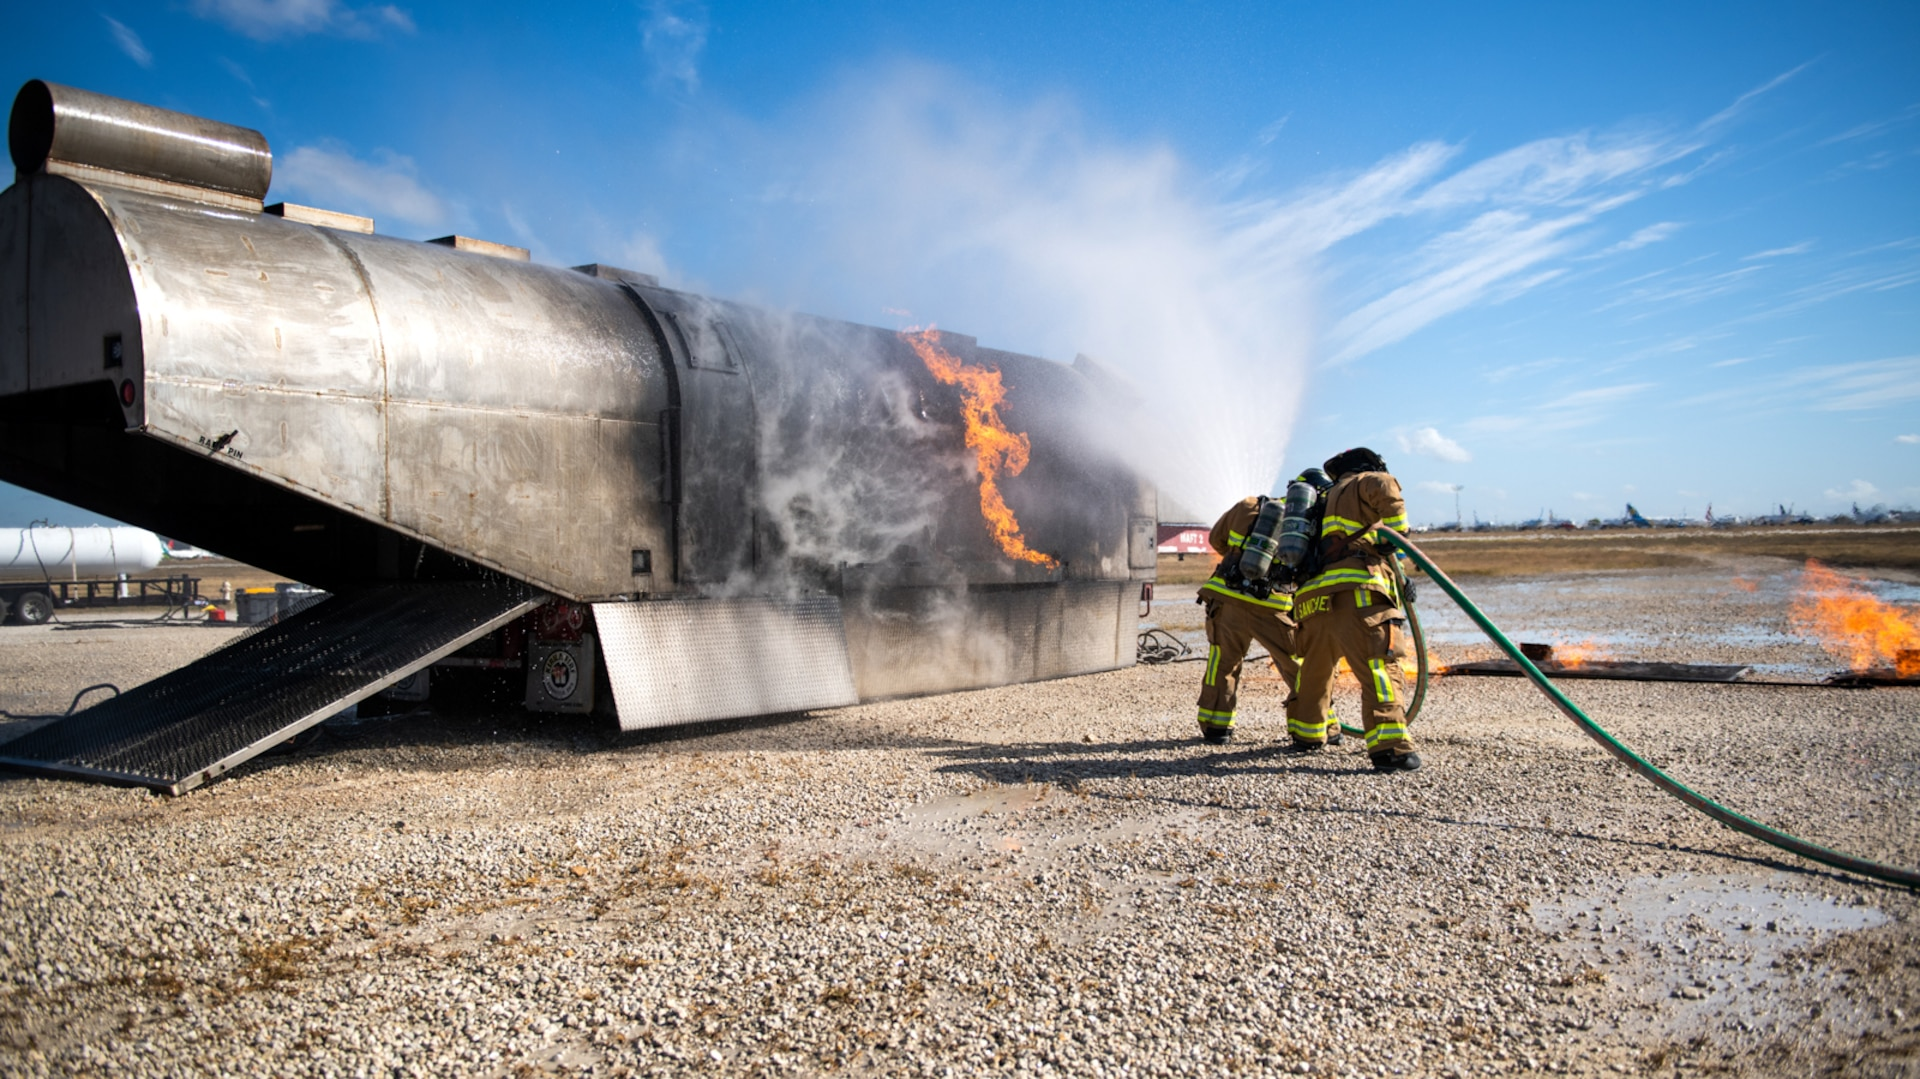 Andrew Sanchez assists Eric Flores, both firefighters with Joint Base San Antonio, during a live fire Aircraft Rescue Fire Fighting training Nov. 20, 2020, at Joint Base San Antonio-Kelly Field, Texas.